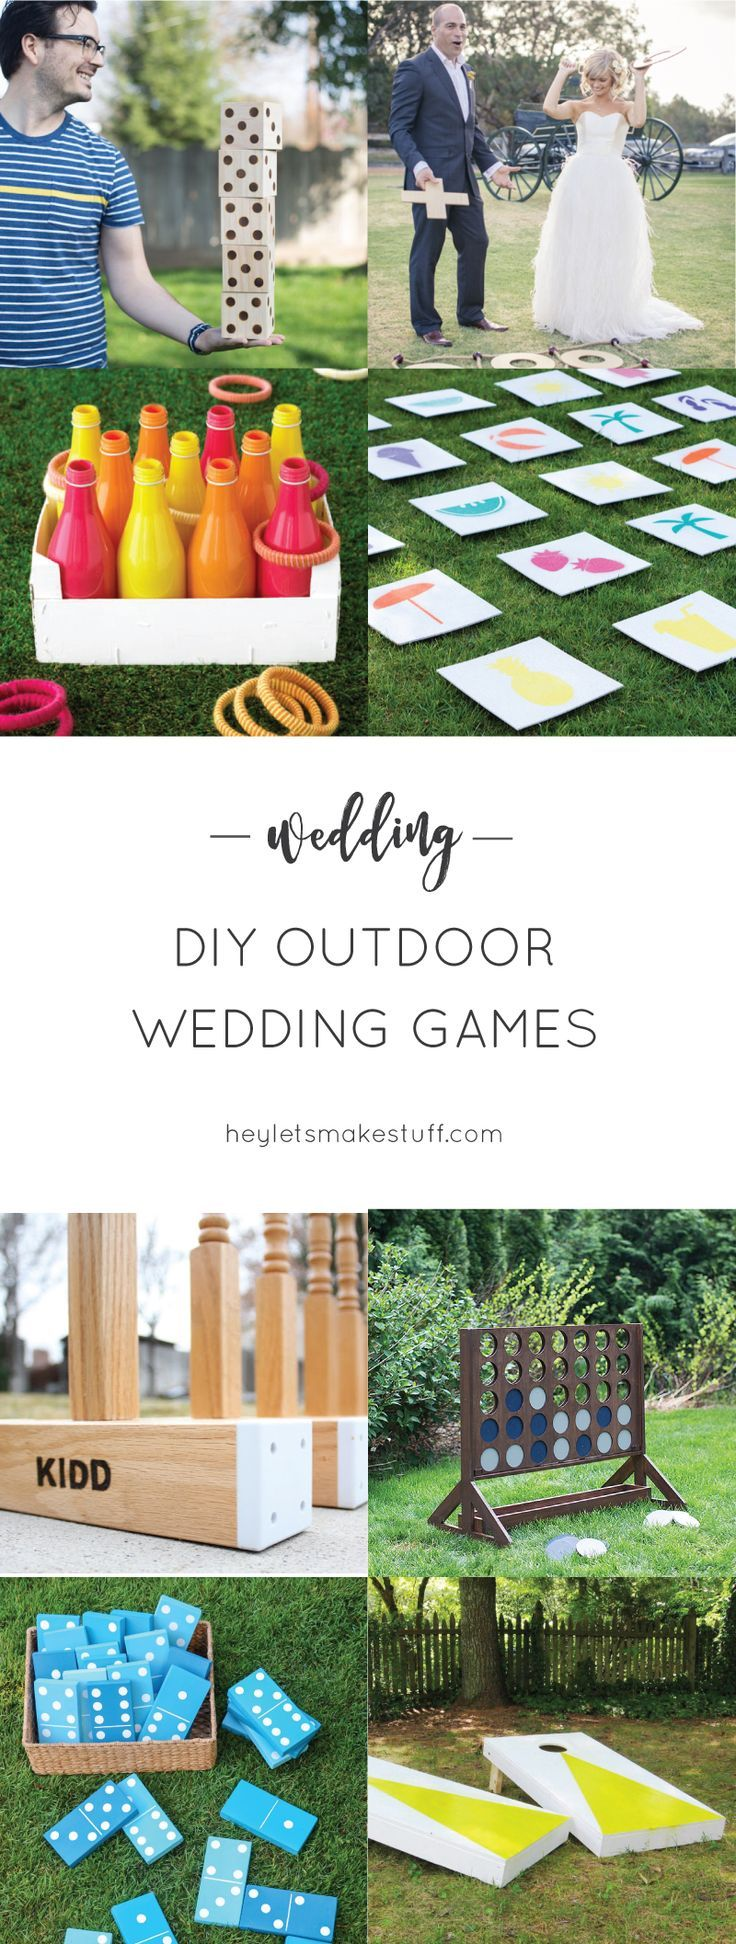 Diy Outdoor Wedding Games Outdoor Wedding Games Lawn Games Wedding Diy Outdoor Weddings